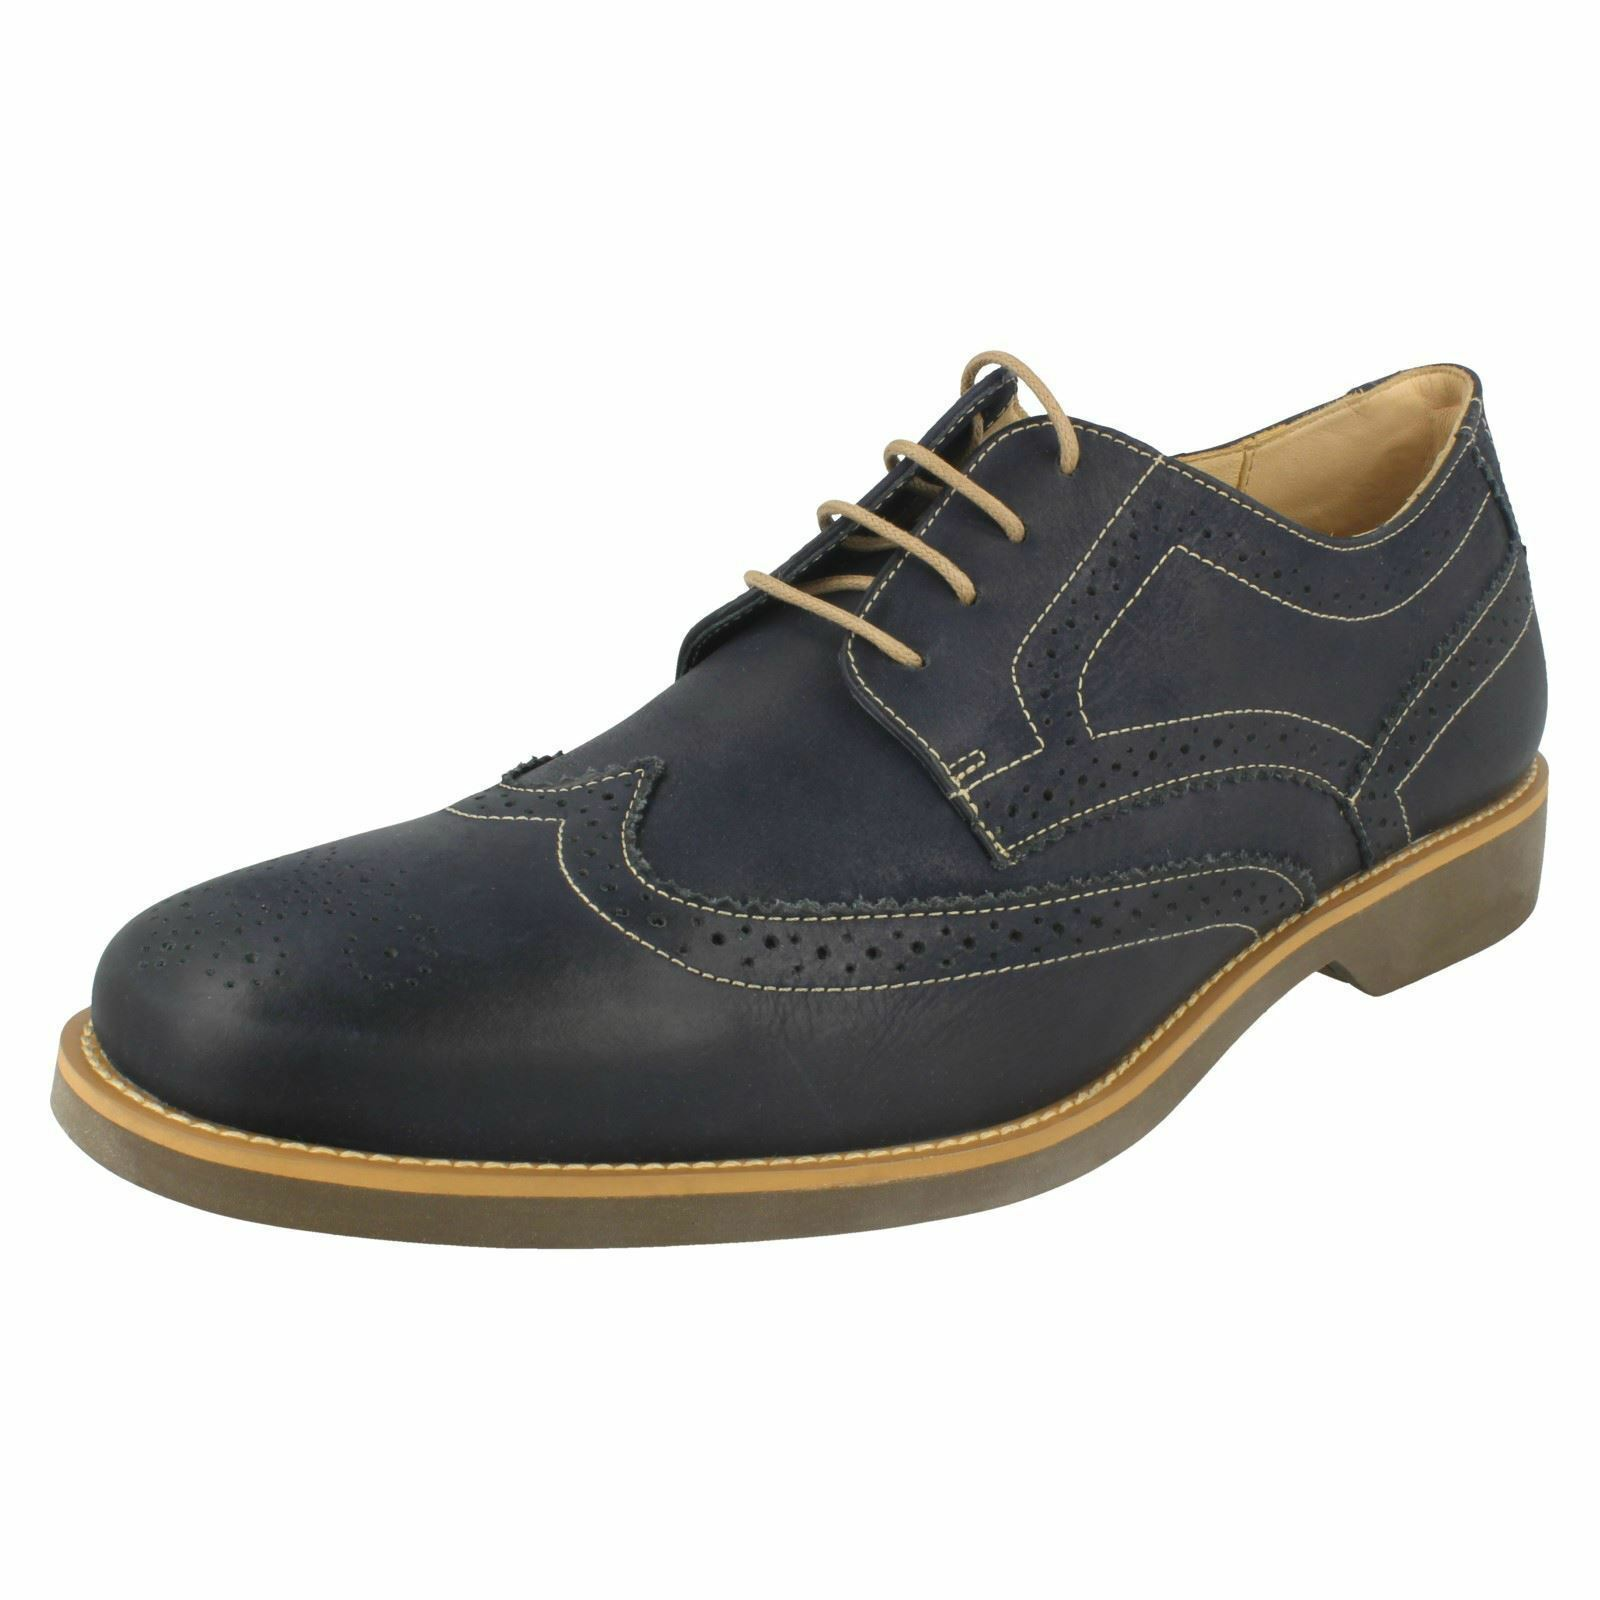 Mens Anatomic Navy Vintage Leather Lace Up Brogue Shoes Tucano 565626